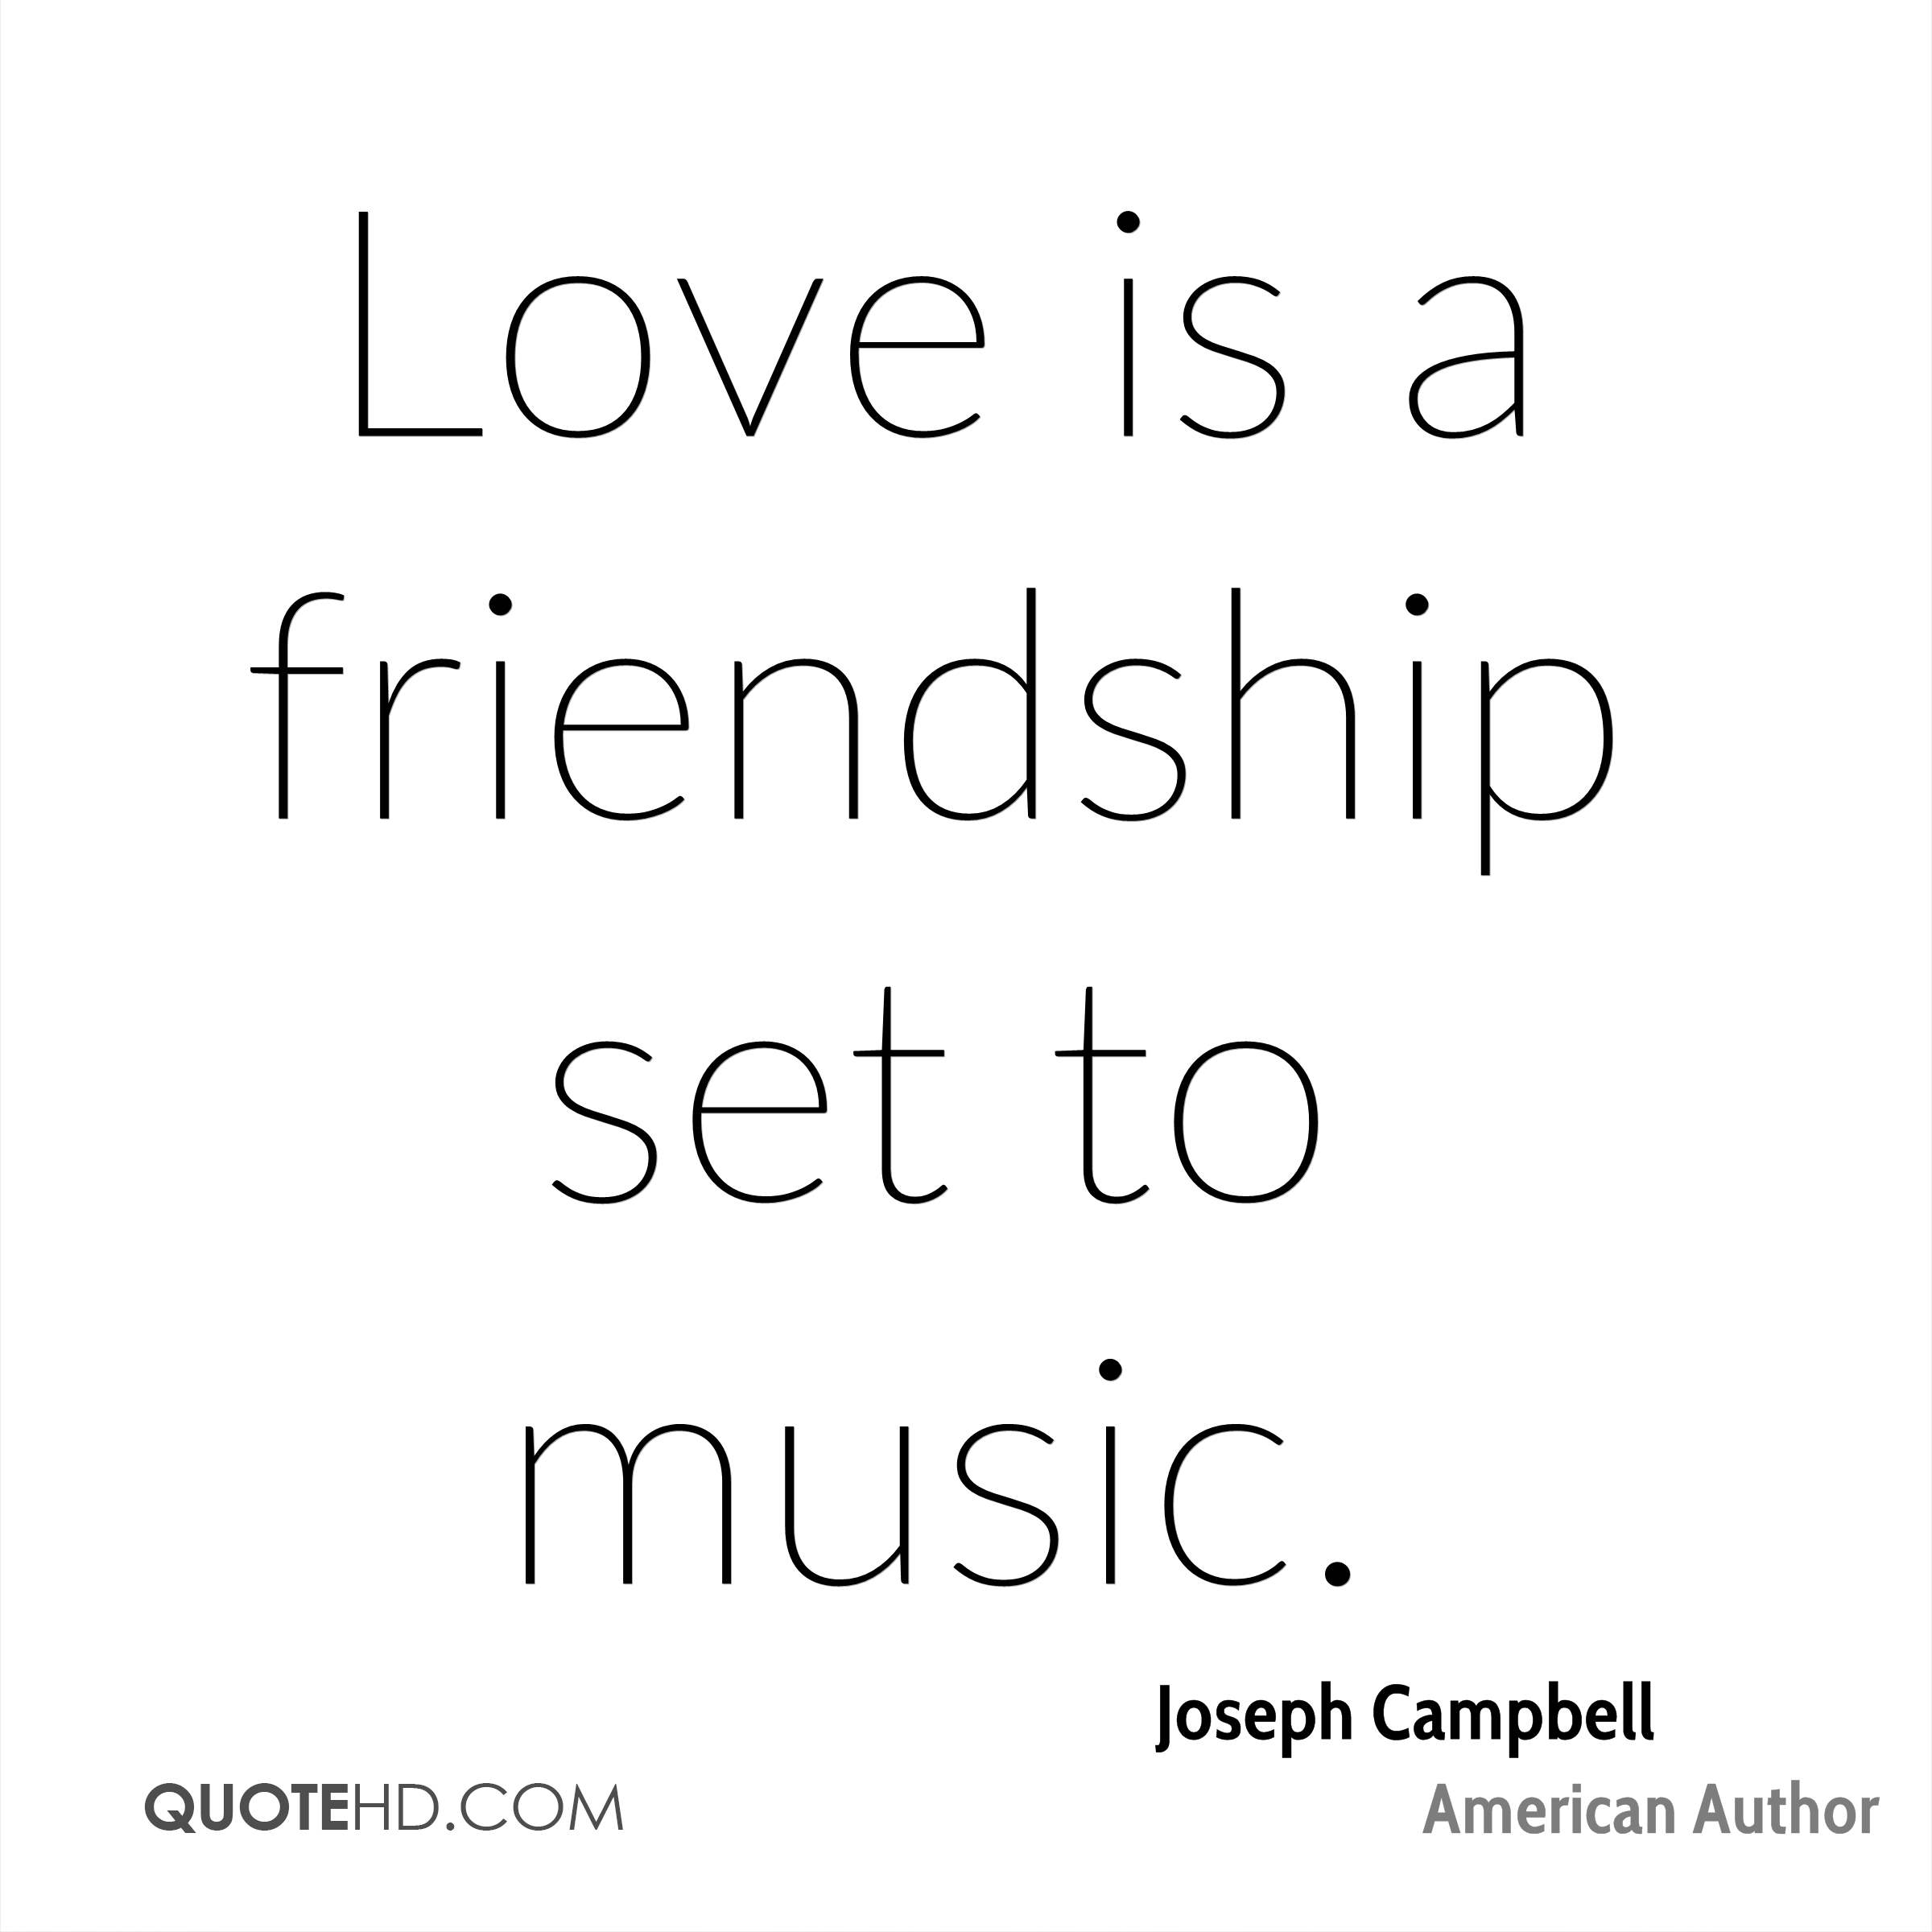 Joseph Campbell Quotes On Love: Joseph Campbell Music Quotes